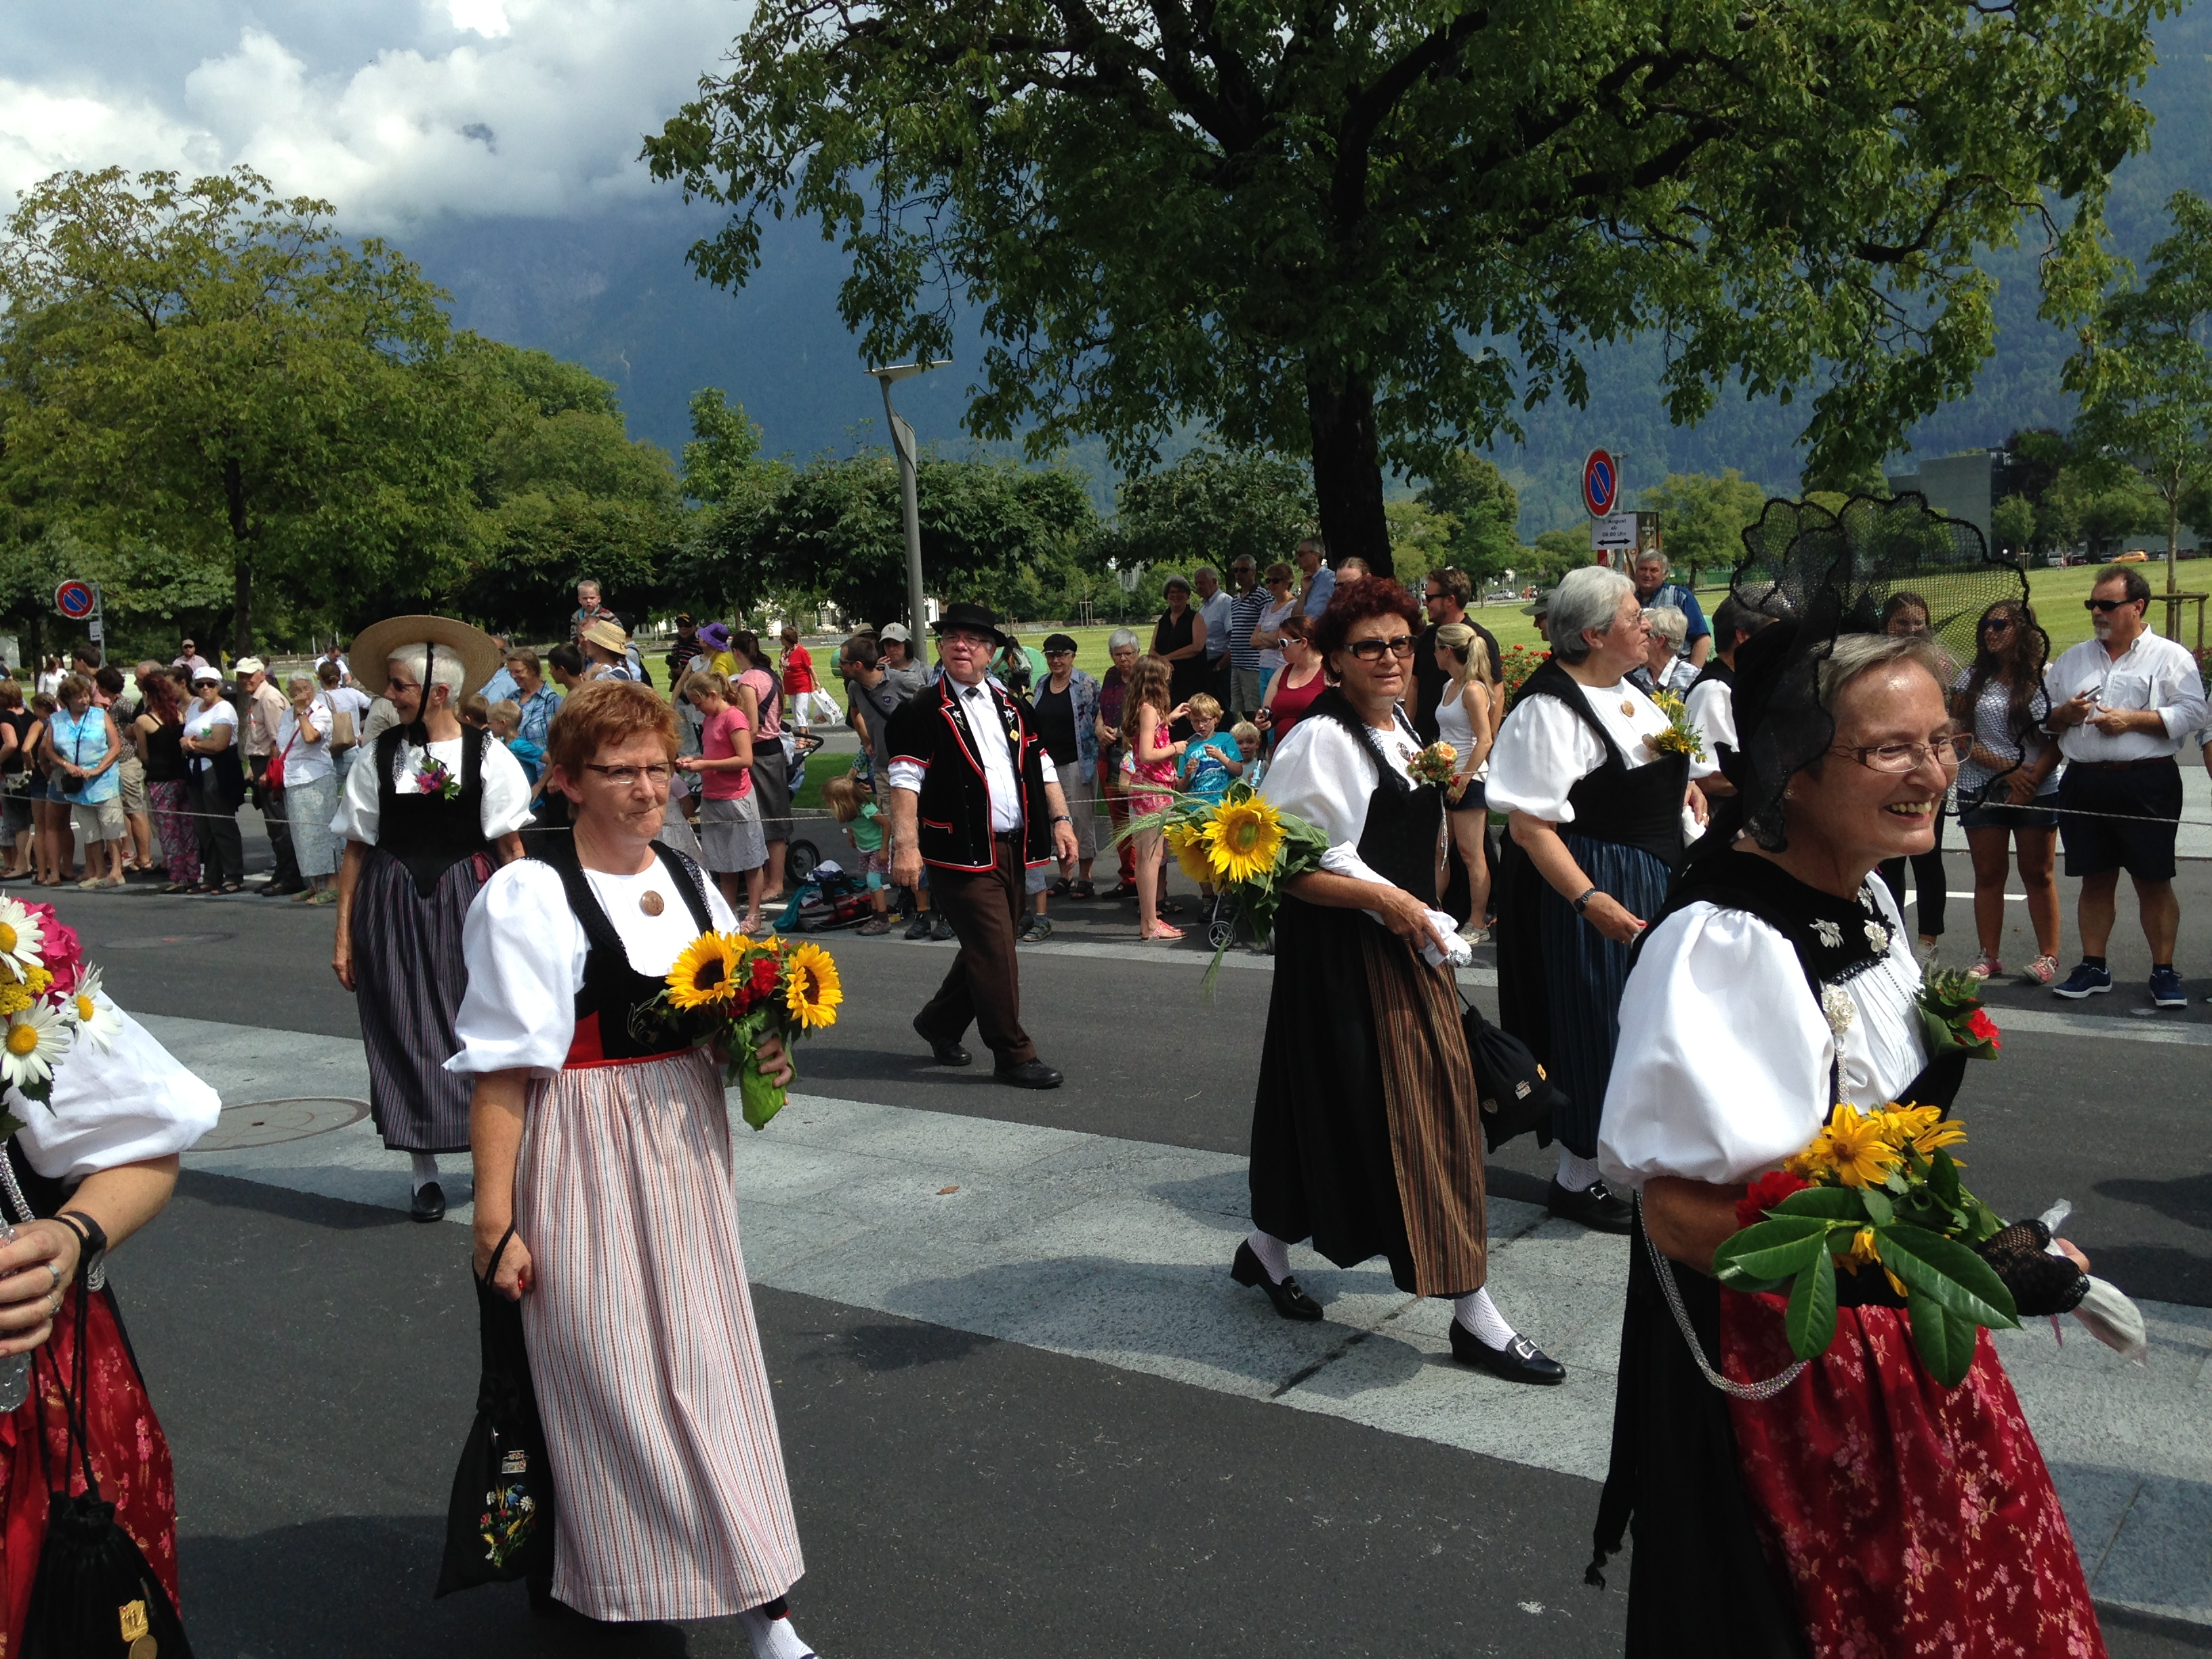 Bauerntracht - Traditional Attire